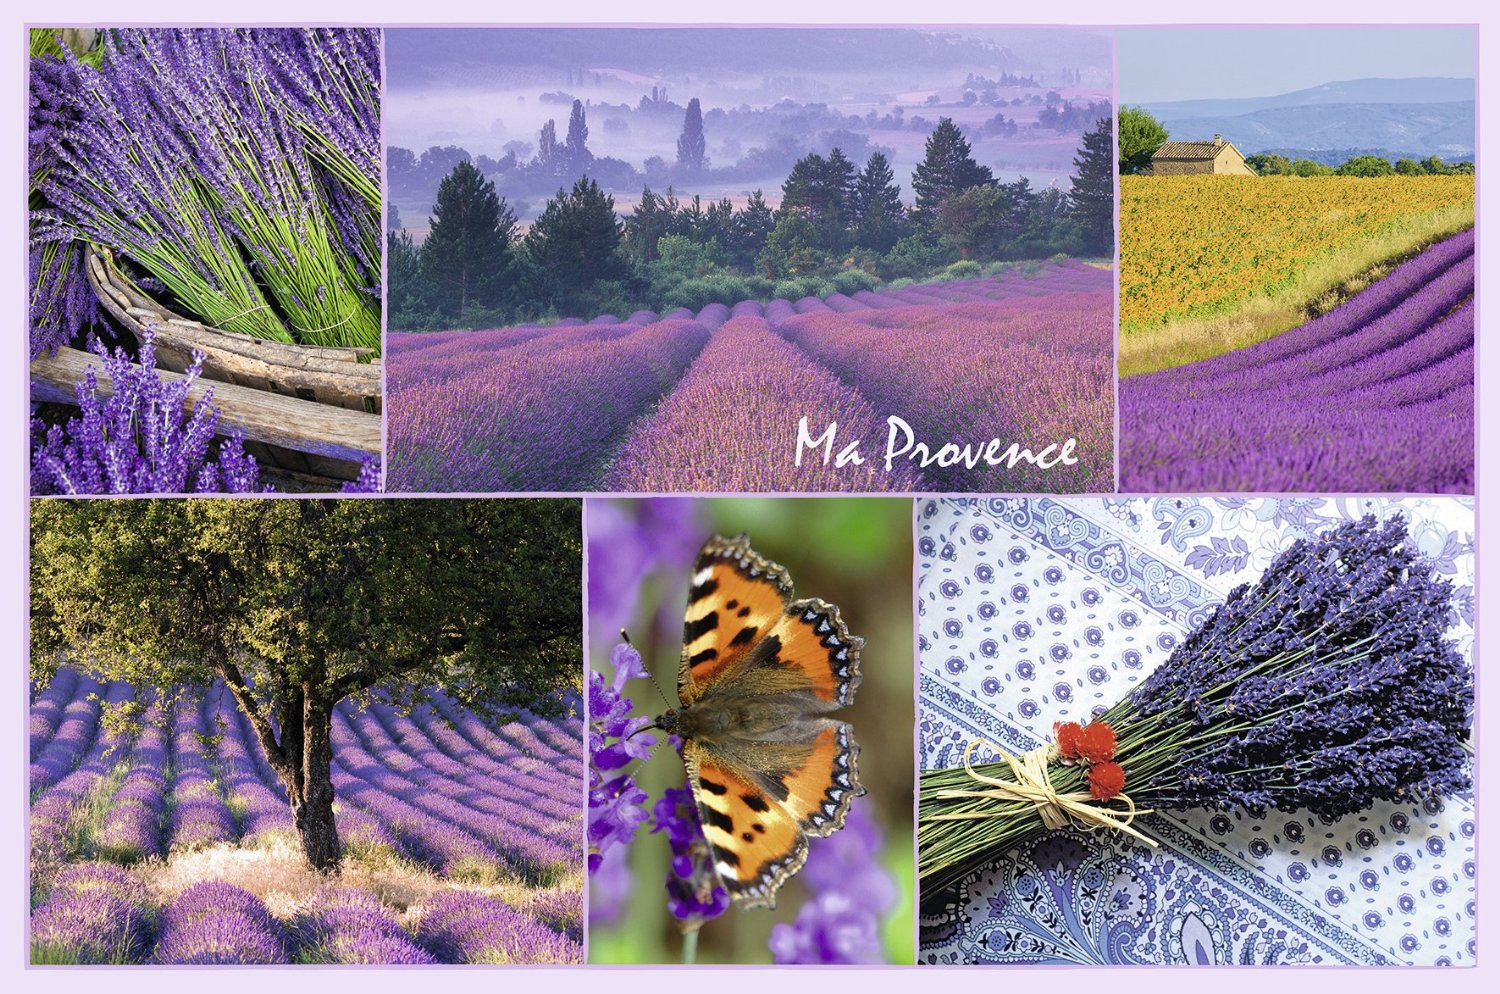 Ma Provence 3000 Teile Querformat Puzzle Ravensburger